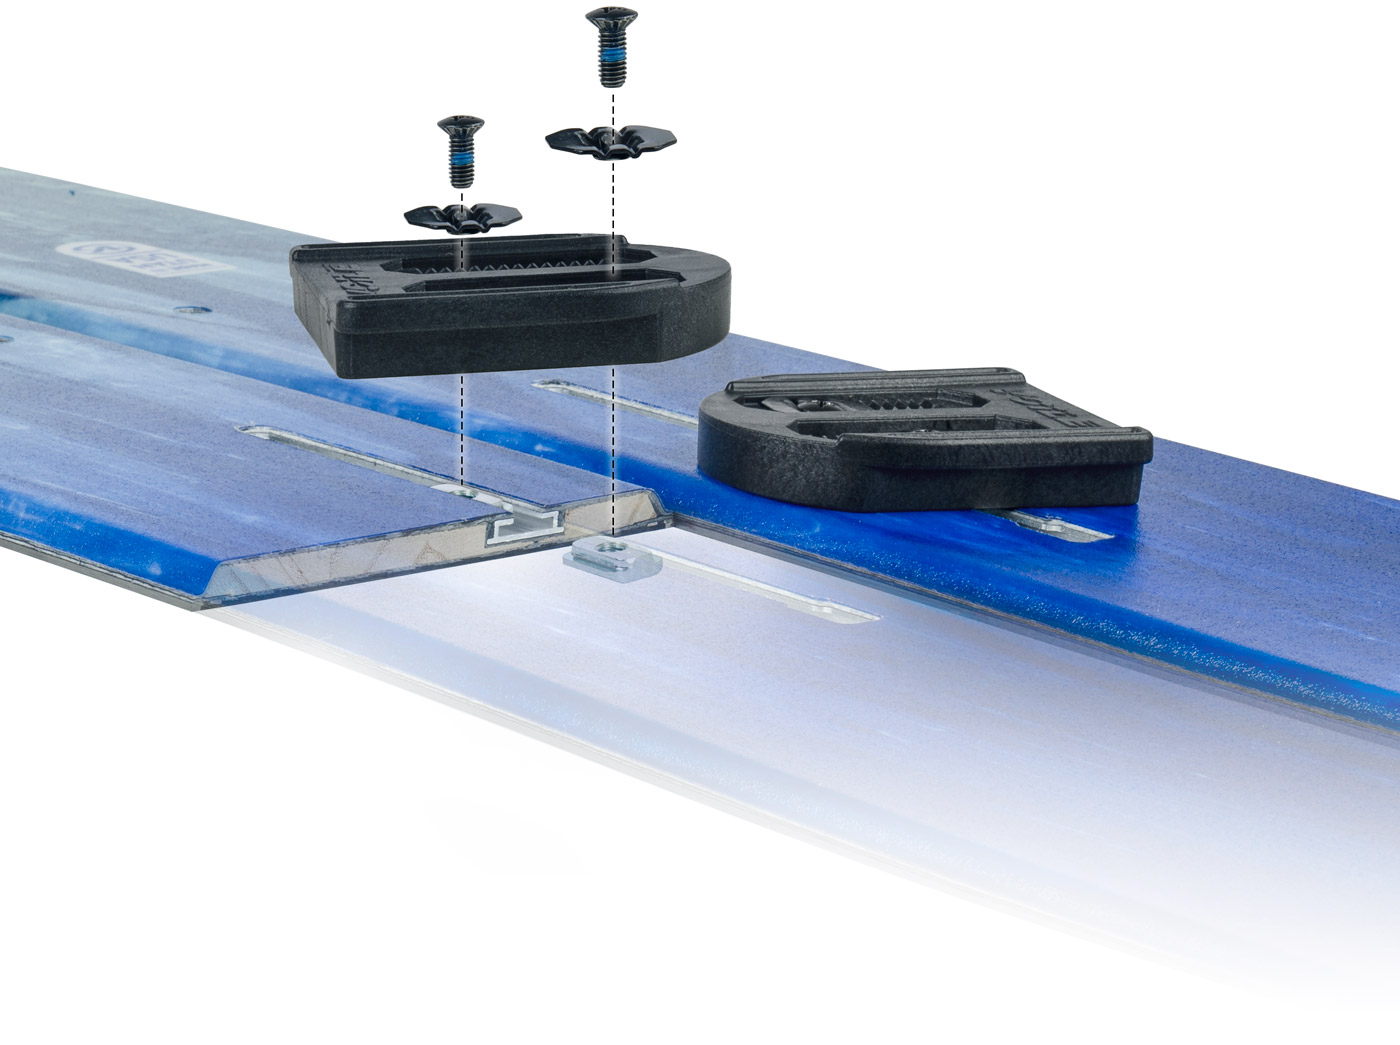 Voile Splitboard Channel Puck System